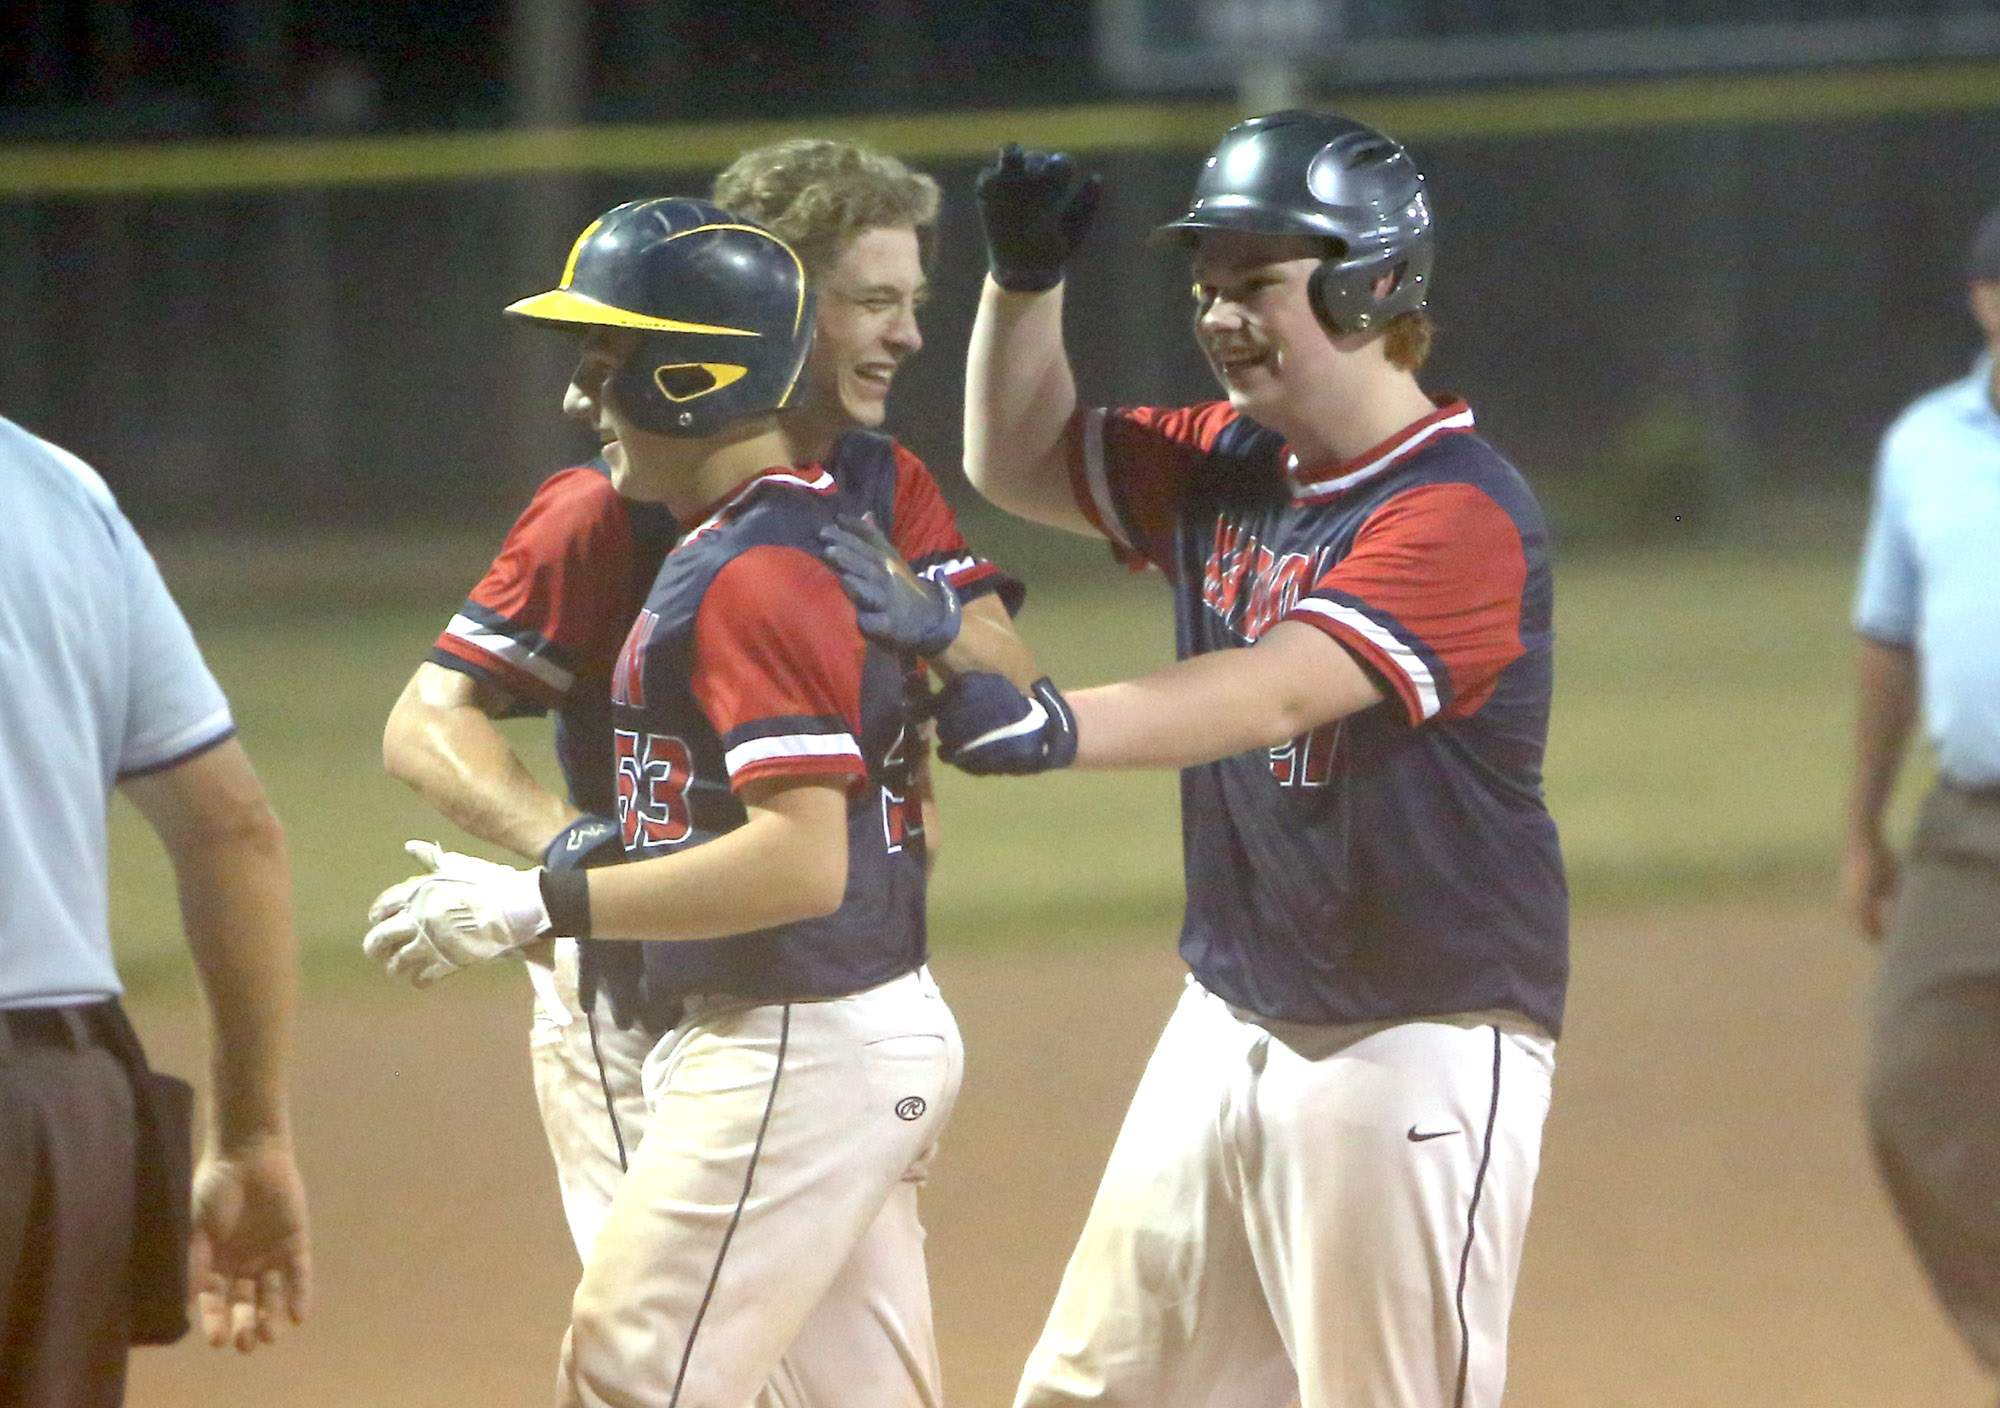 Aaron Maragni is congratulated after driving in the winning run.